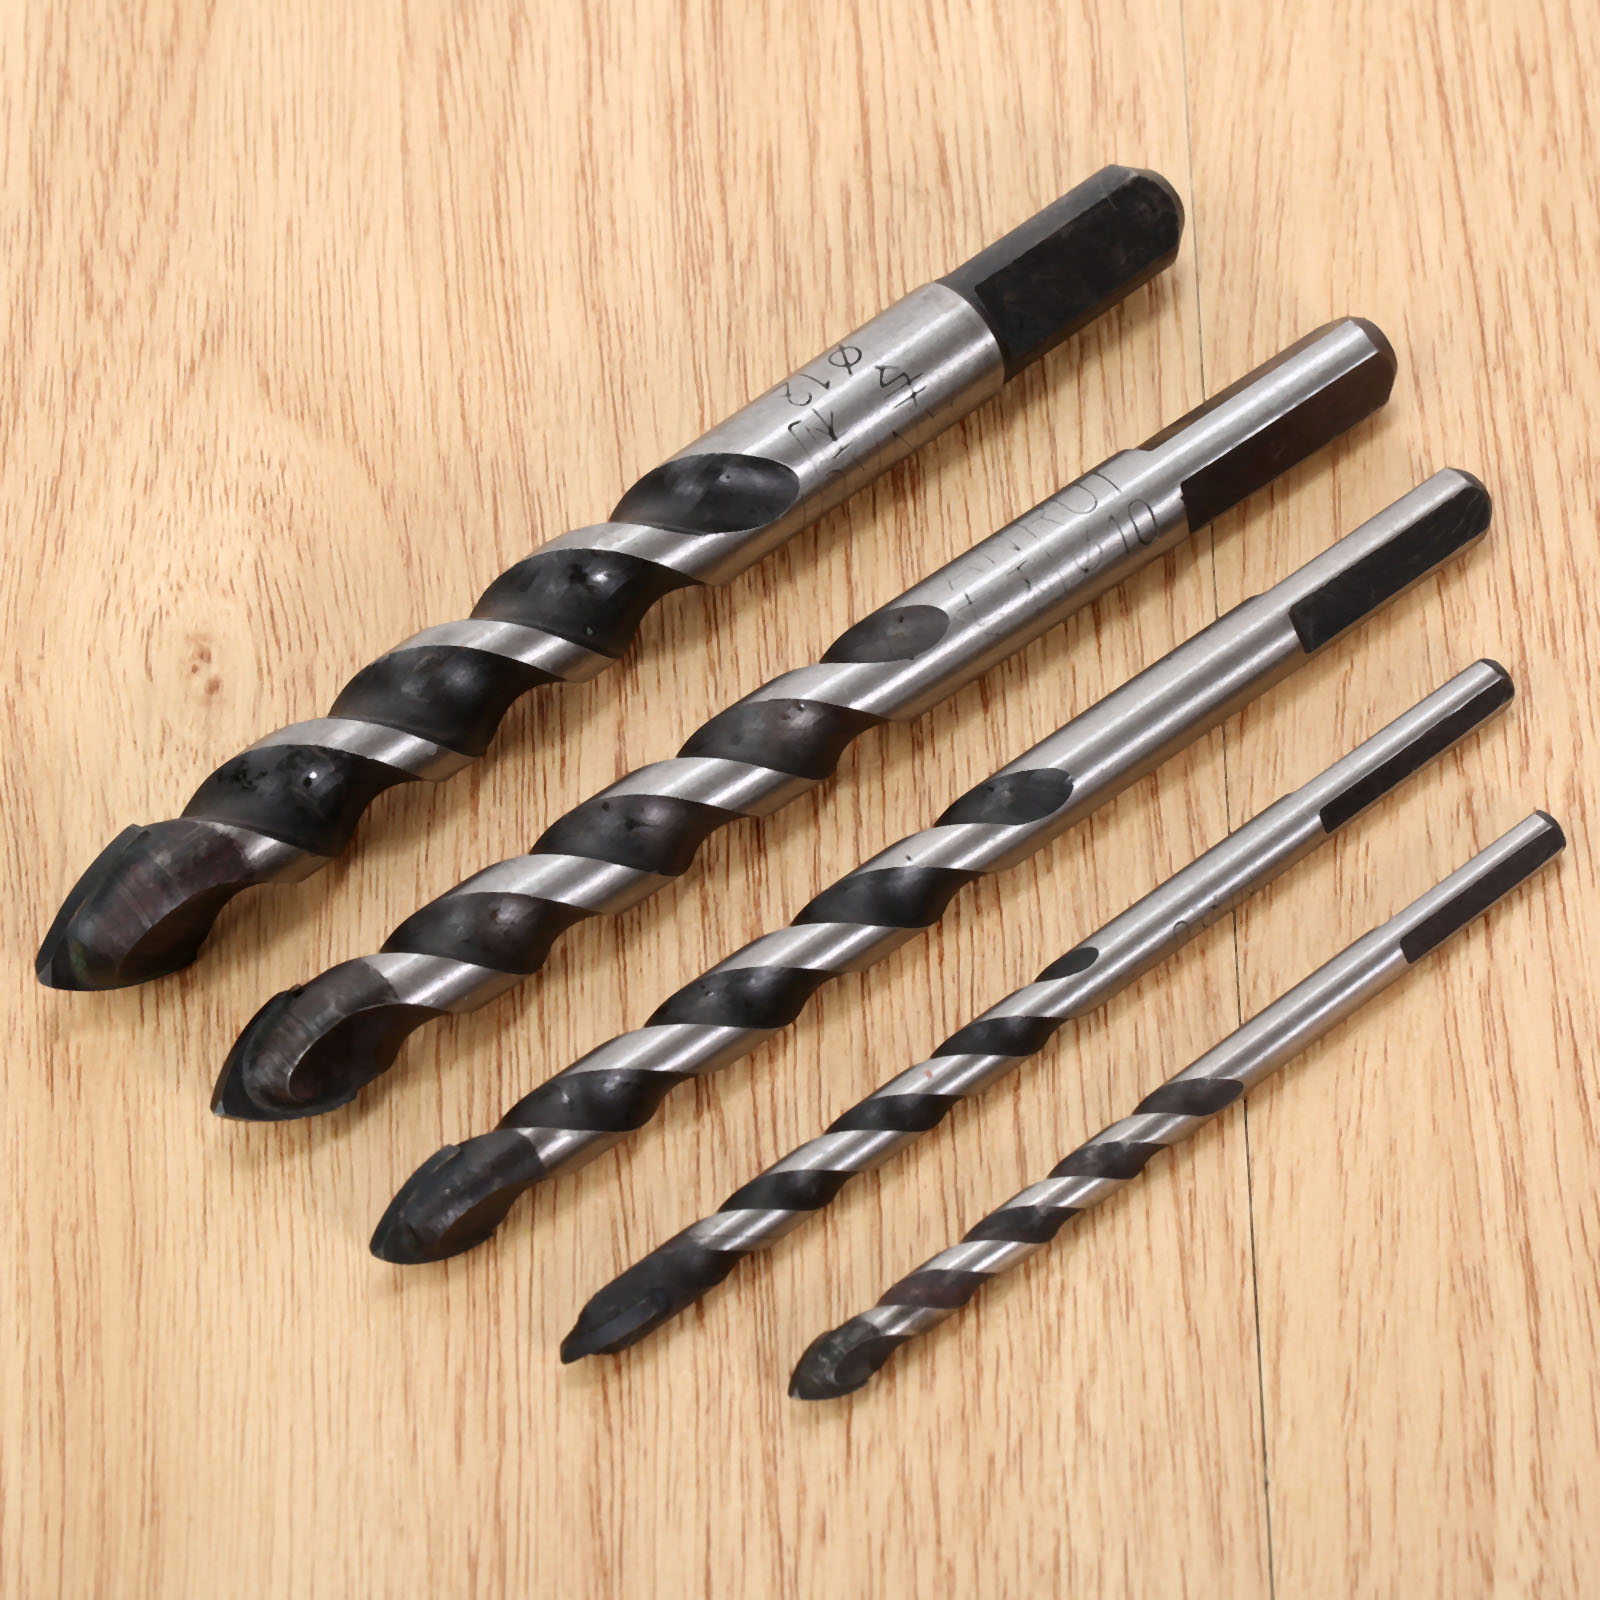 5Pcs Drywall Tungsten Carbide Drill Bit Set for Wood Ceramic Tile Marble Mirror Glass 5/6/8/10/12mm w/ Triangle Shank Power Tool 5pcs drywall tungsten carbide drill bit set for wood ceramic tile marble mirror glass w triangle shank power tool 6 6 8 10 12mm